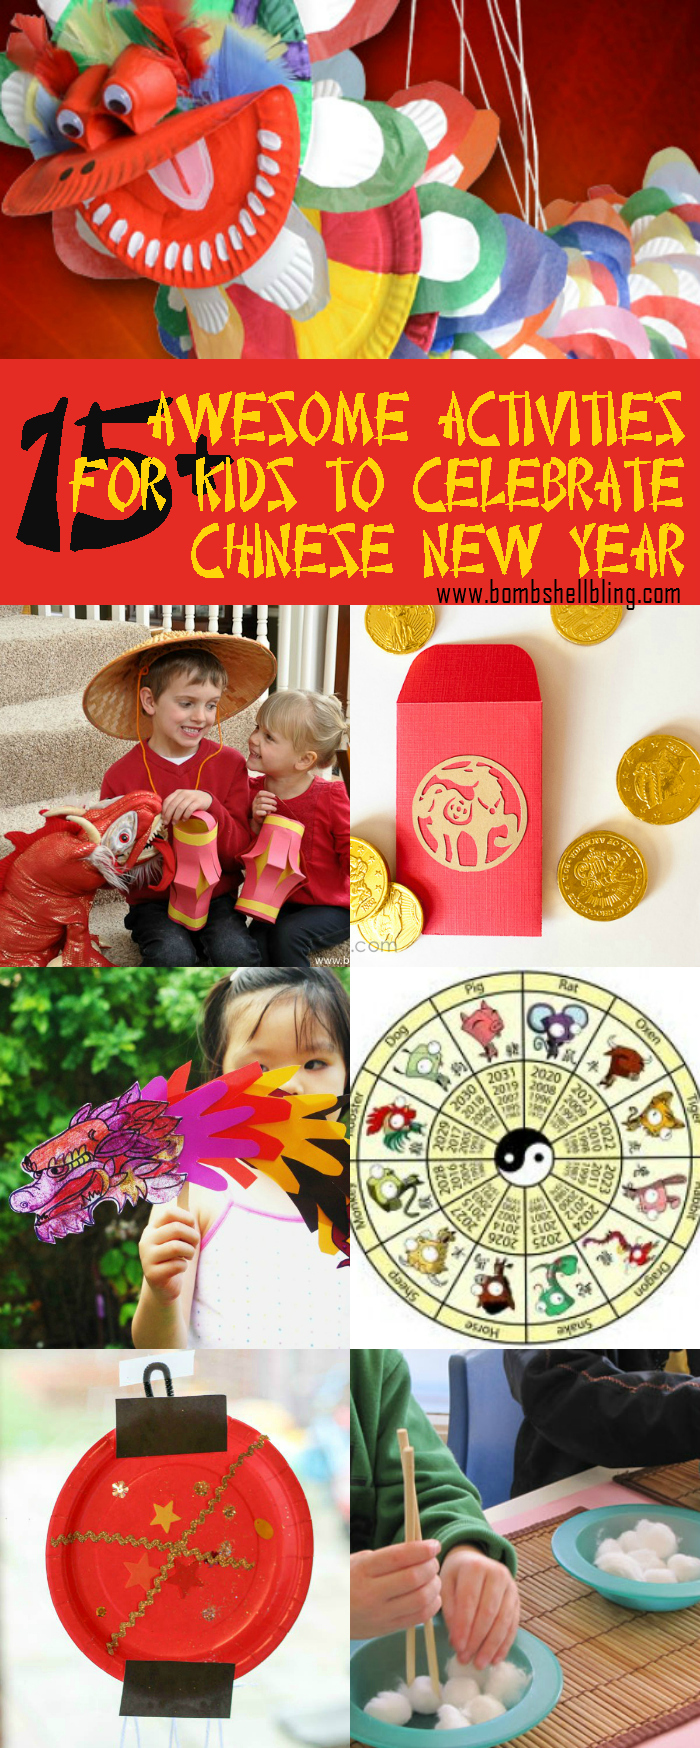 These Chinese New Year activities for kids are sure to delight and easy to implement for your family celebration.